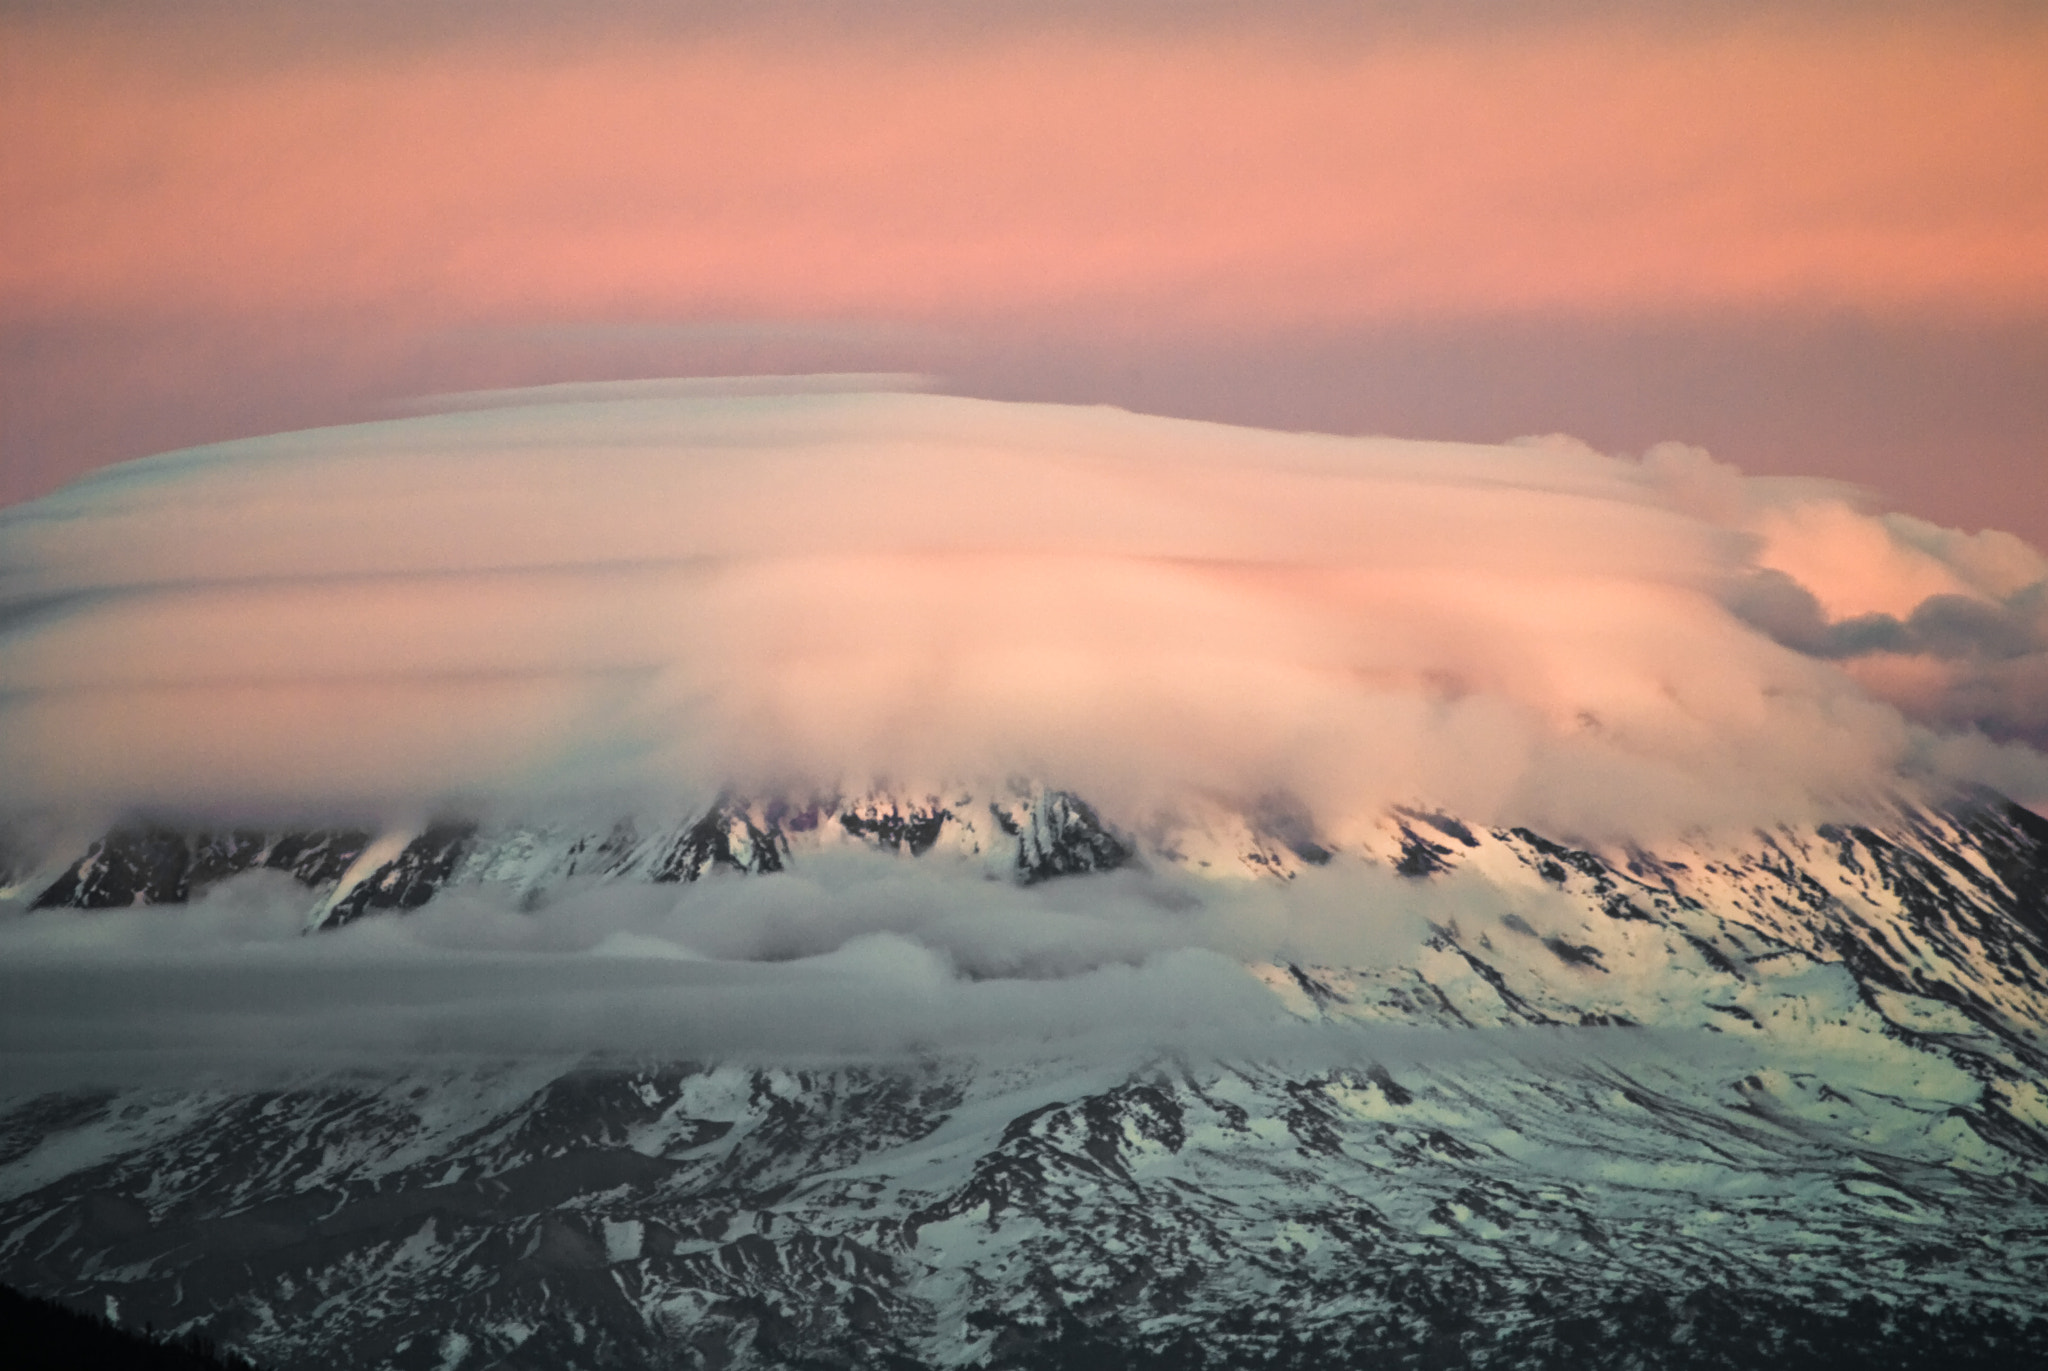 Photograph Mt. Adams from Mt. St. Helens by Marshall Alsup on 500px